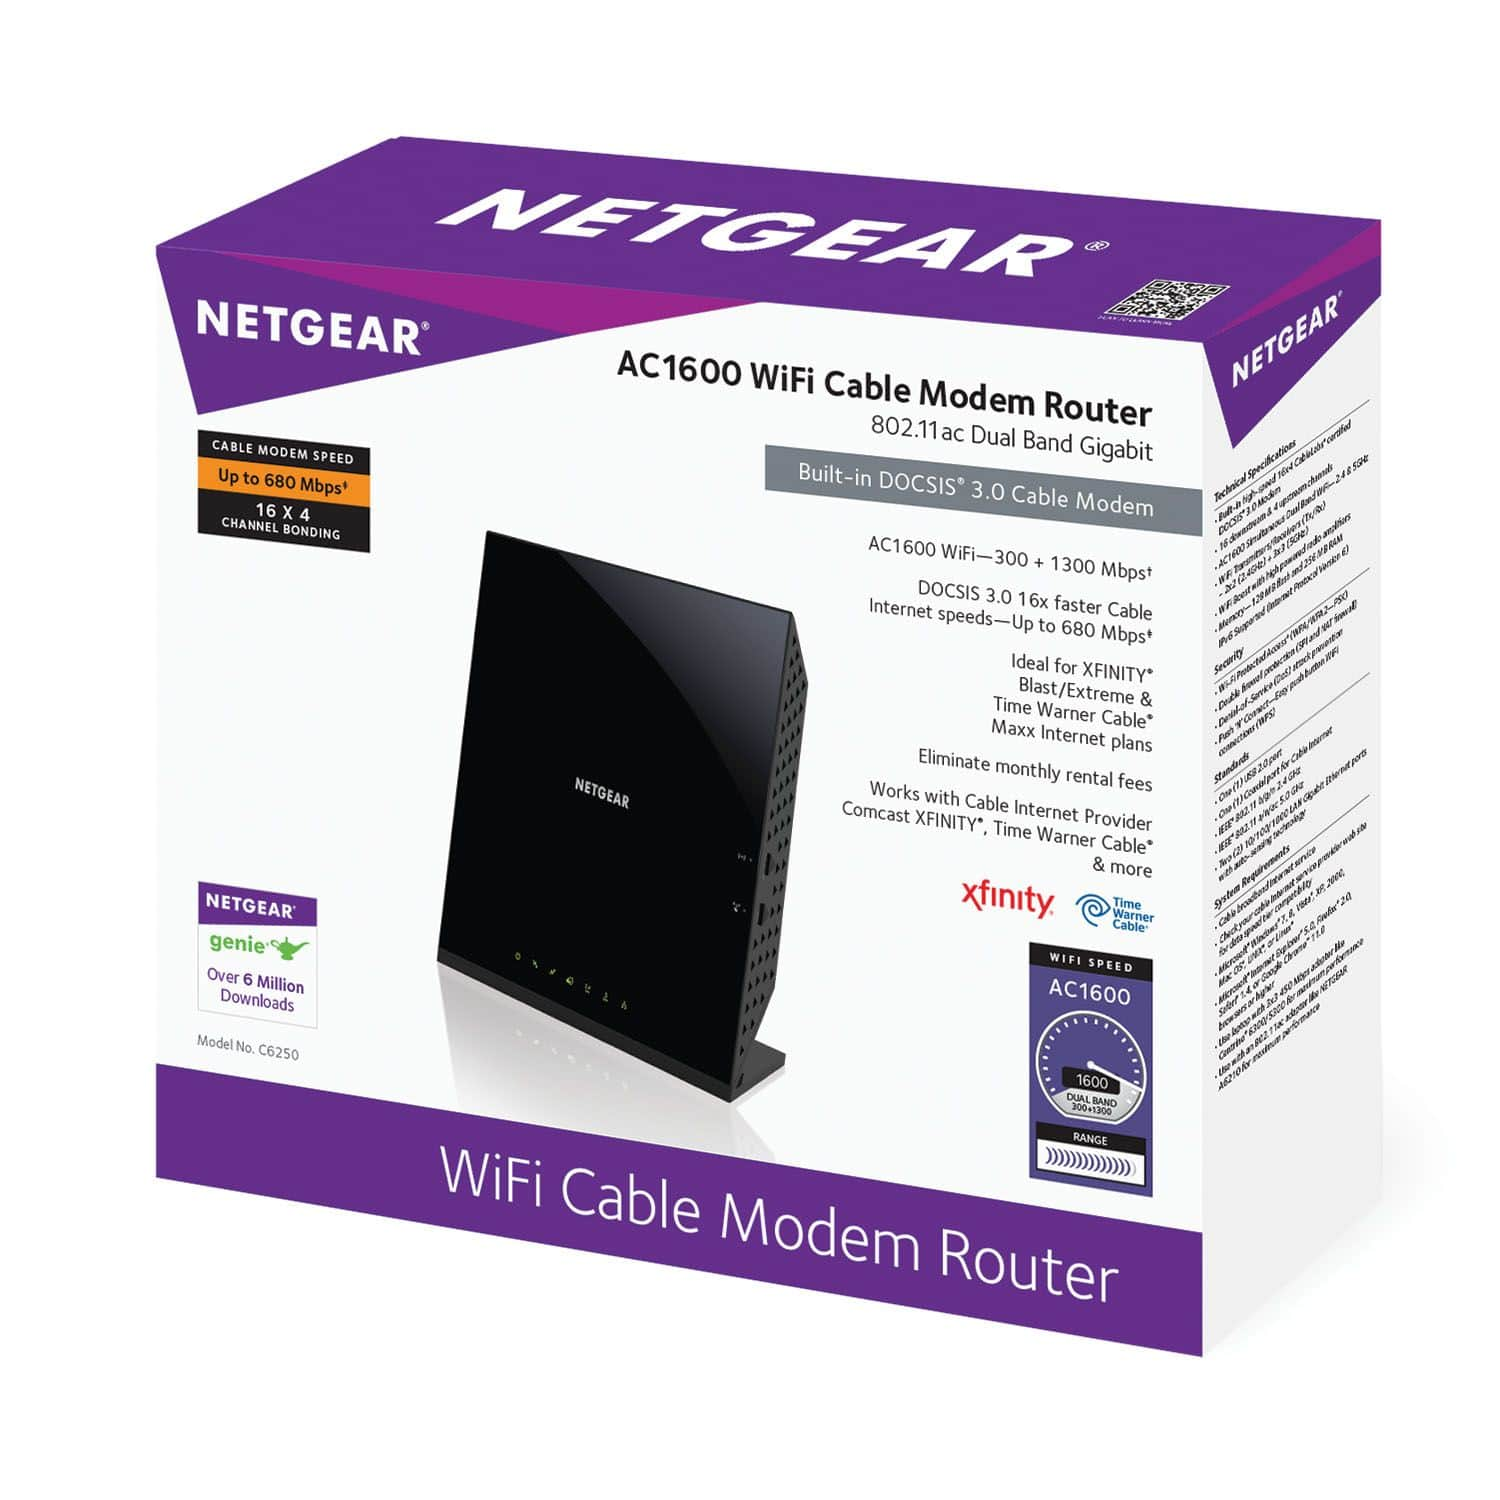 Netgear C6250 AC1600 Wifi Cable Modem Router Dual Band Gigabit Modem Router Combo on further clearance in stores at Walmart B&M YMMV rare $10